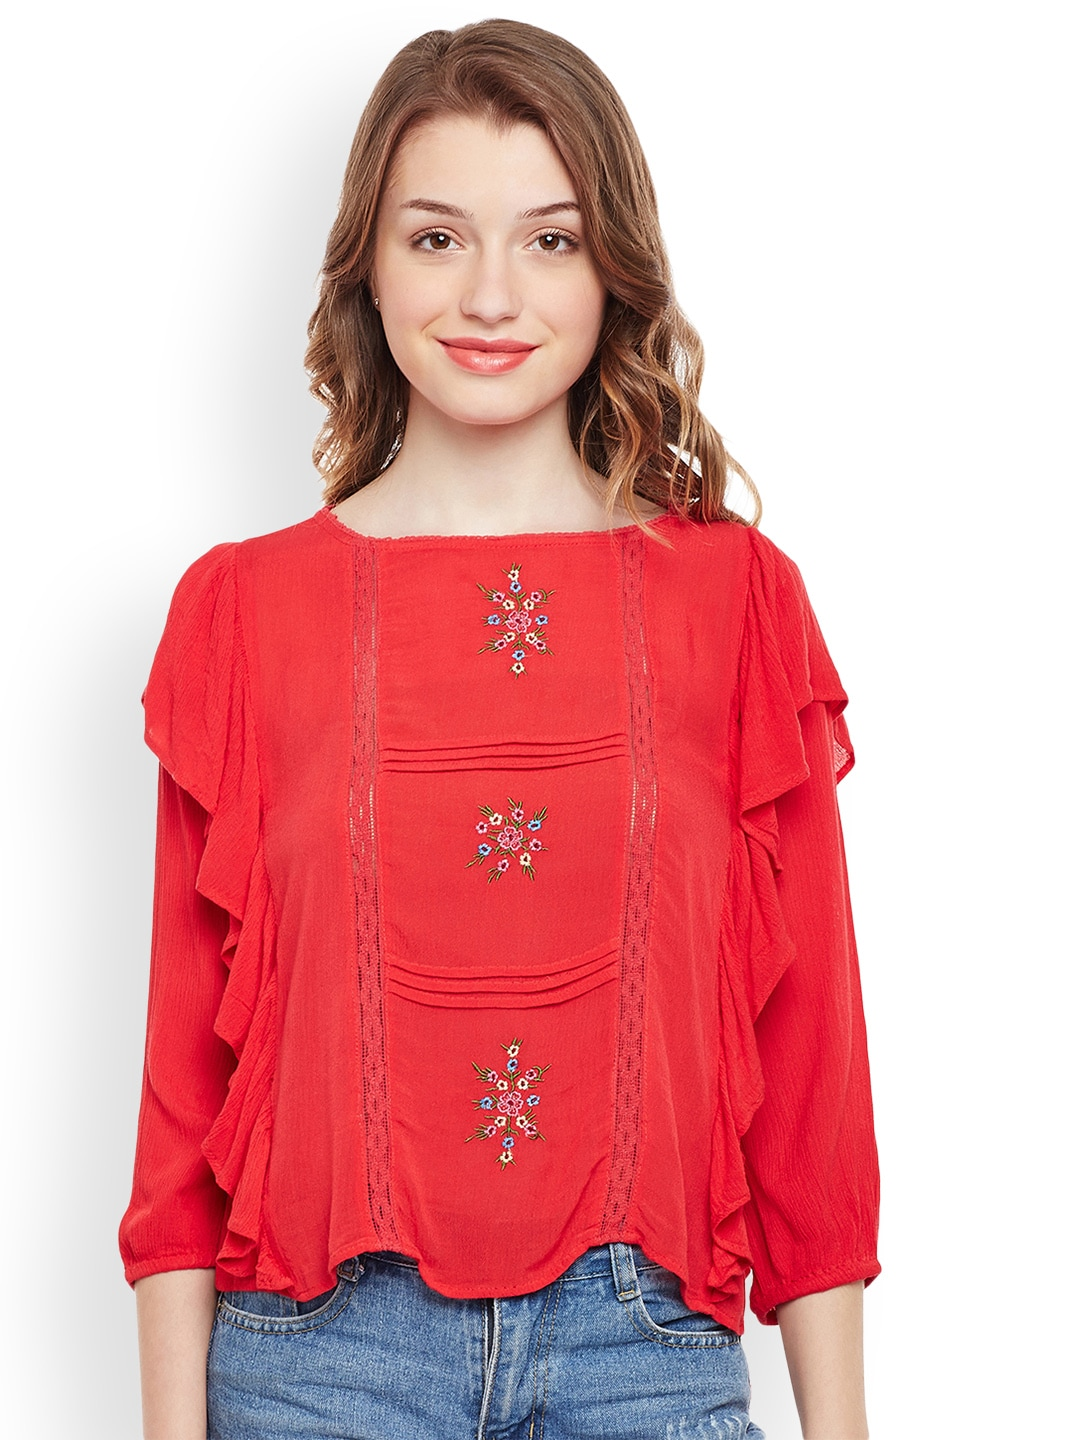 83106e15dec092 Red Top - Buy Red Tops Online at Best Price in India